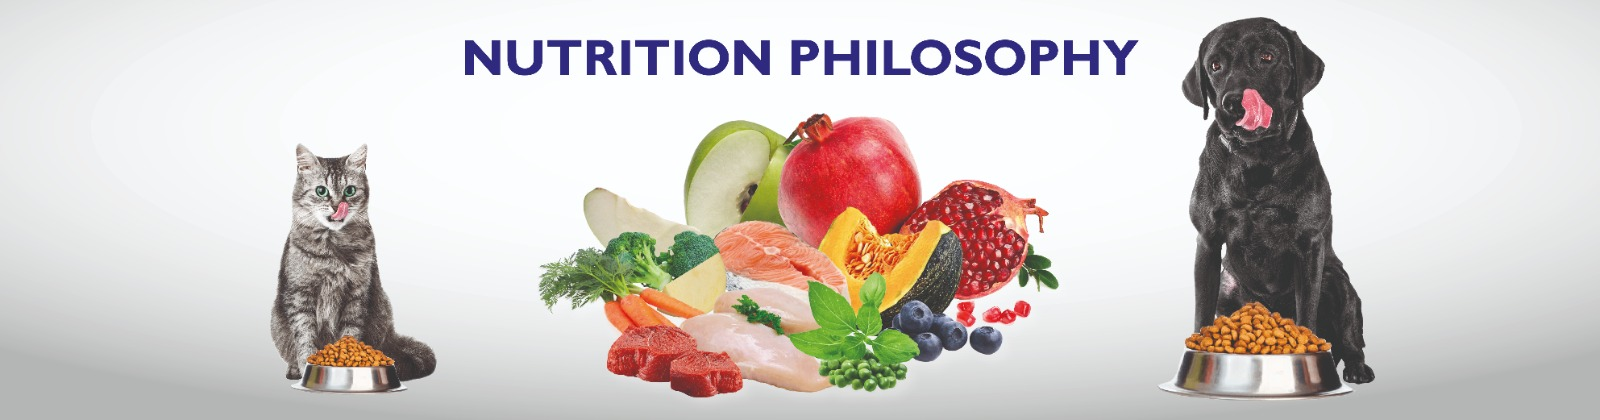 Our Philosophy Of Nutrition